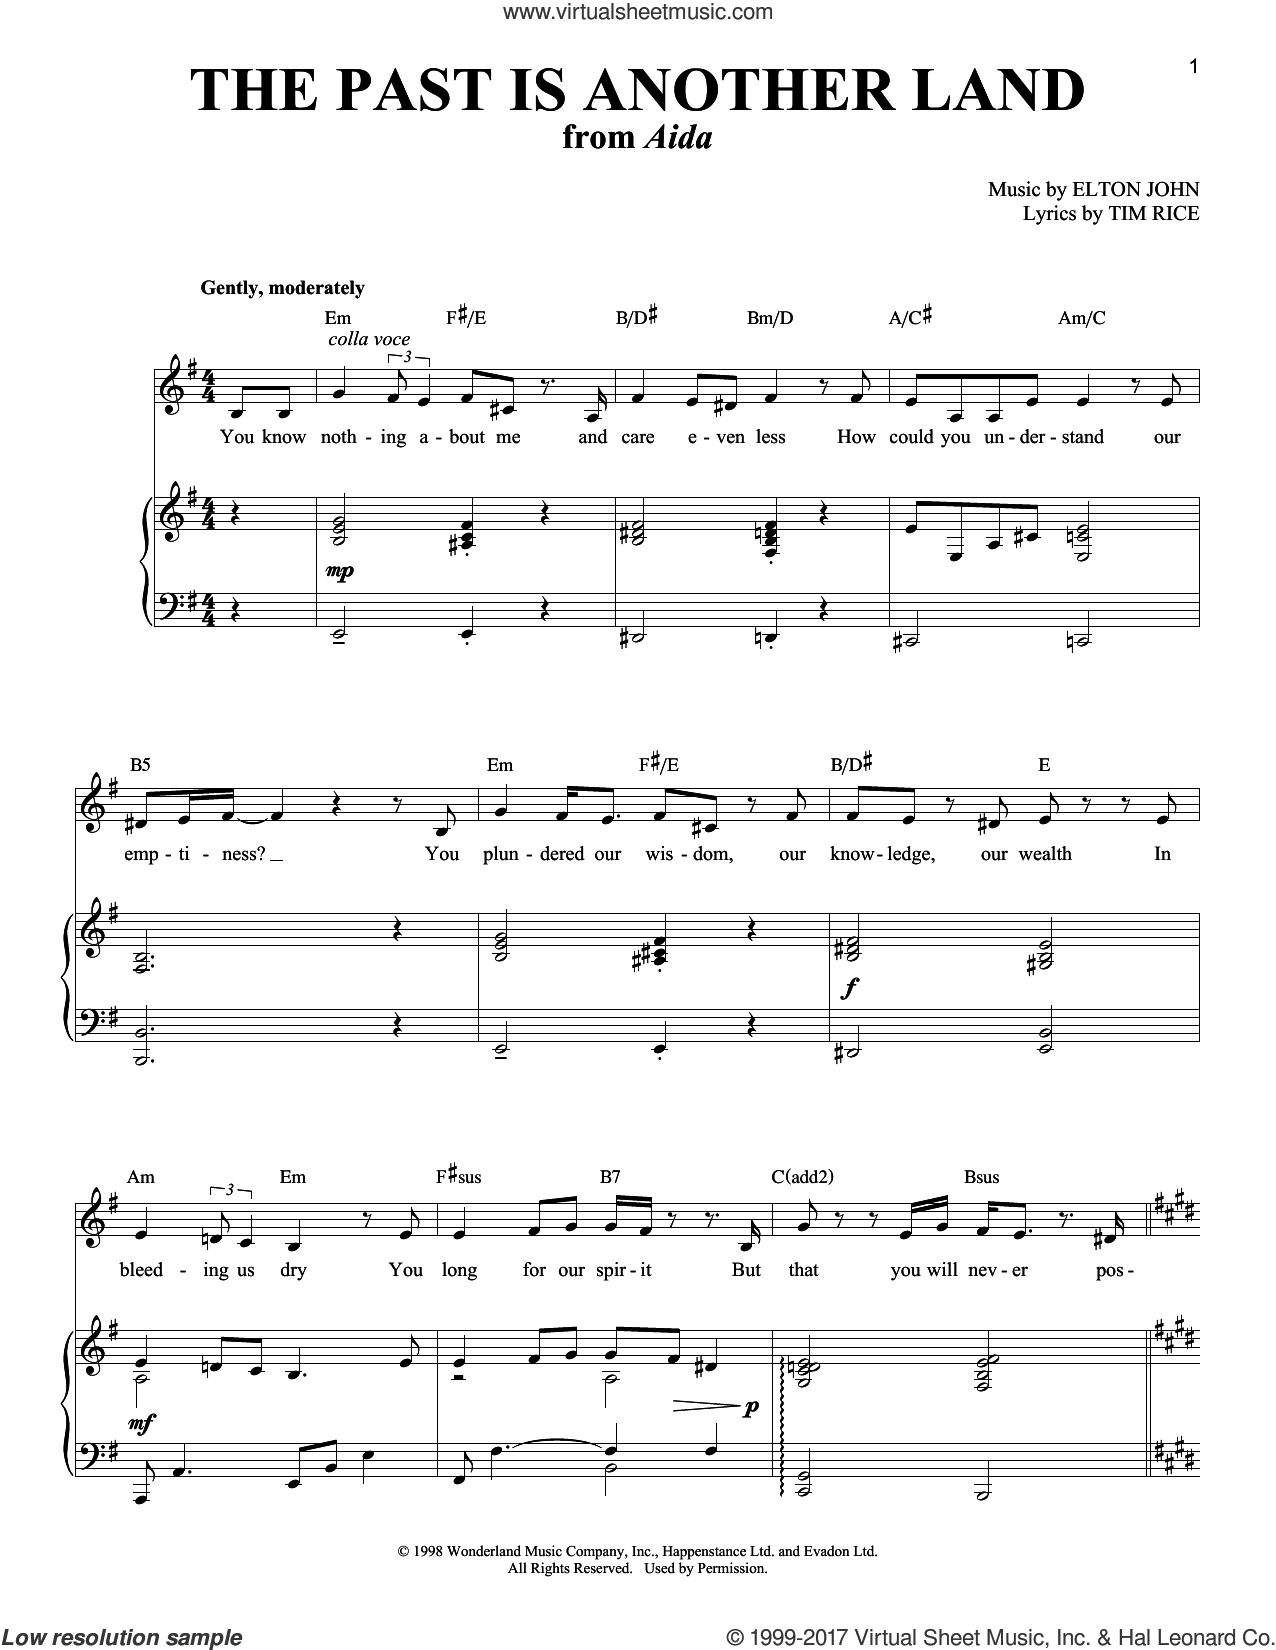 The Past Is Another Land sheet music for voice and piano by Elton John and Tim Rice, intermediate skill level